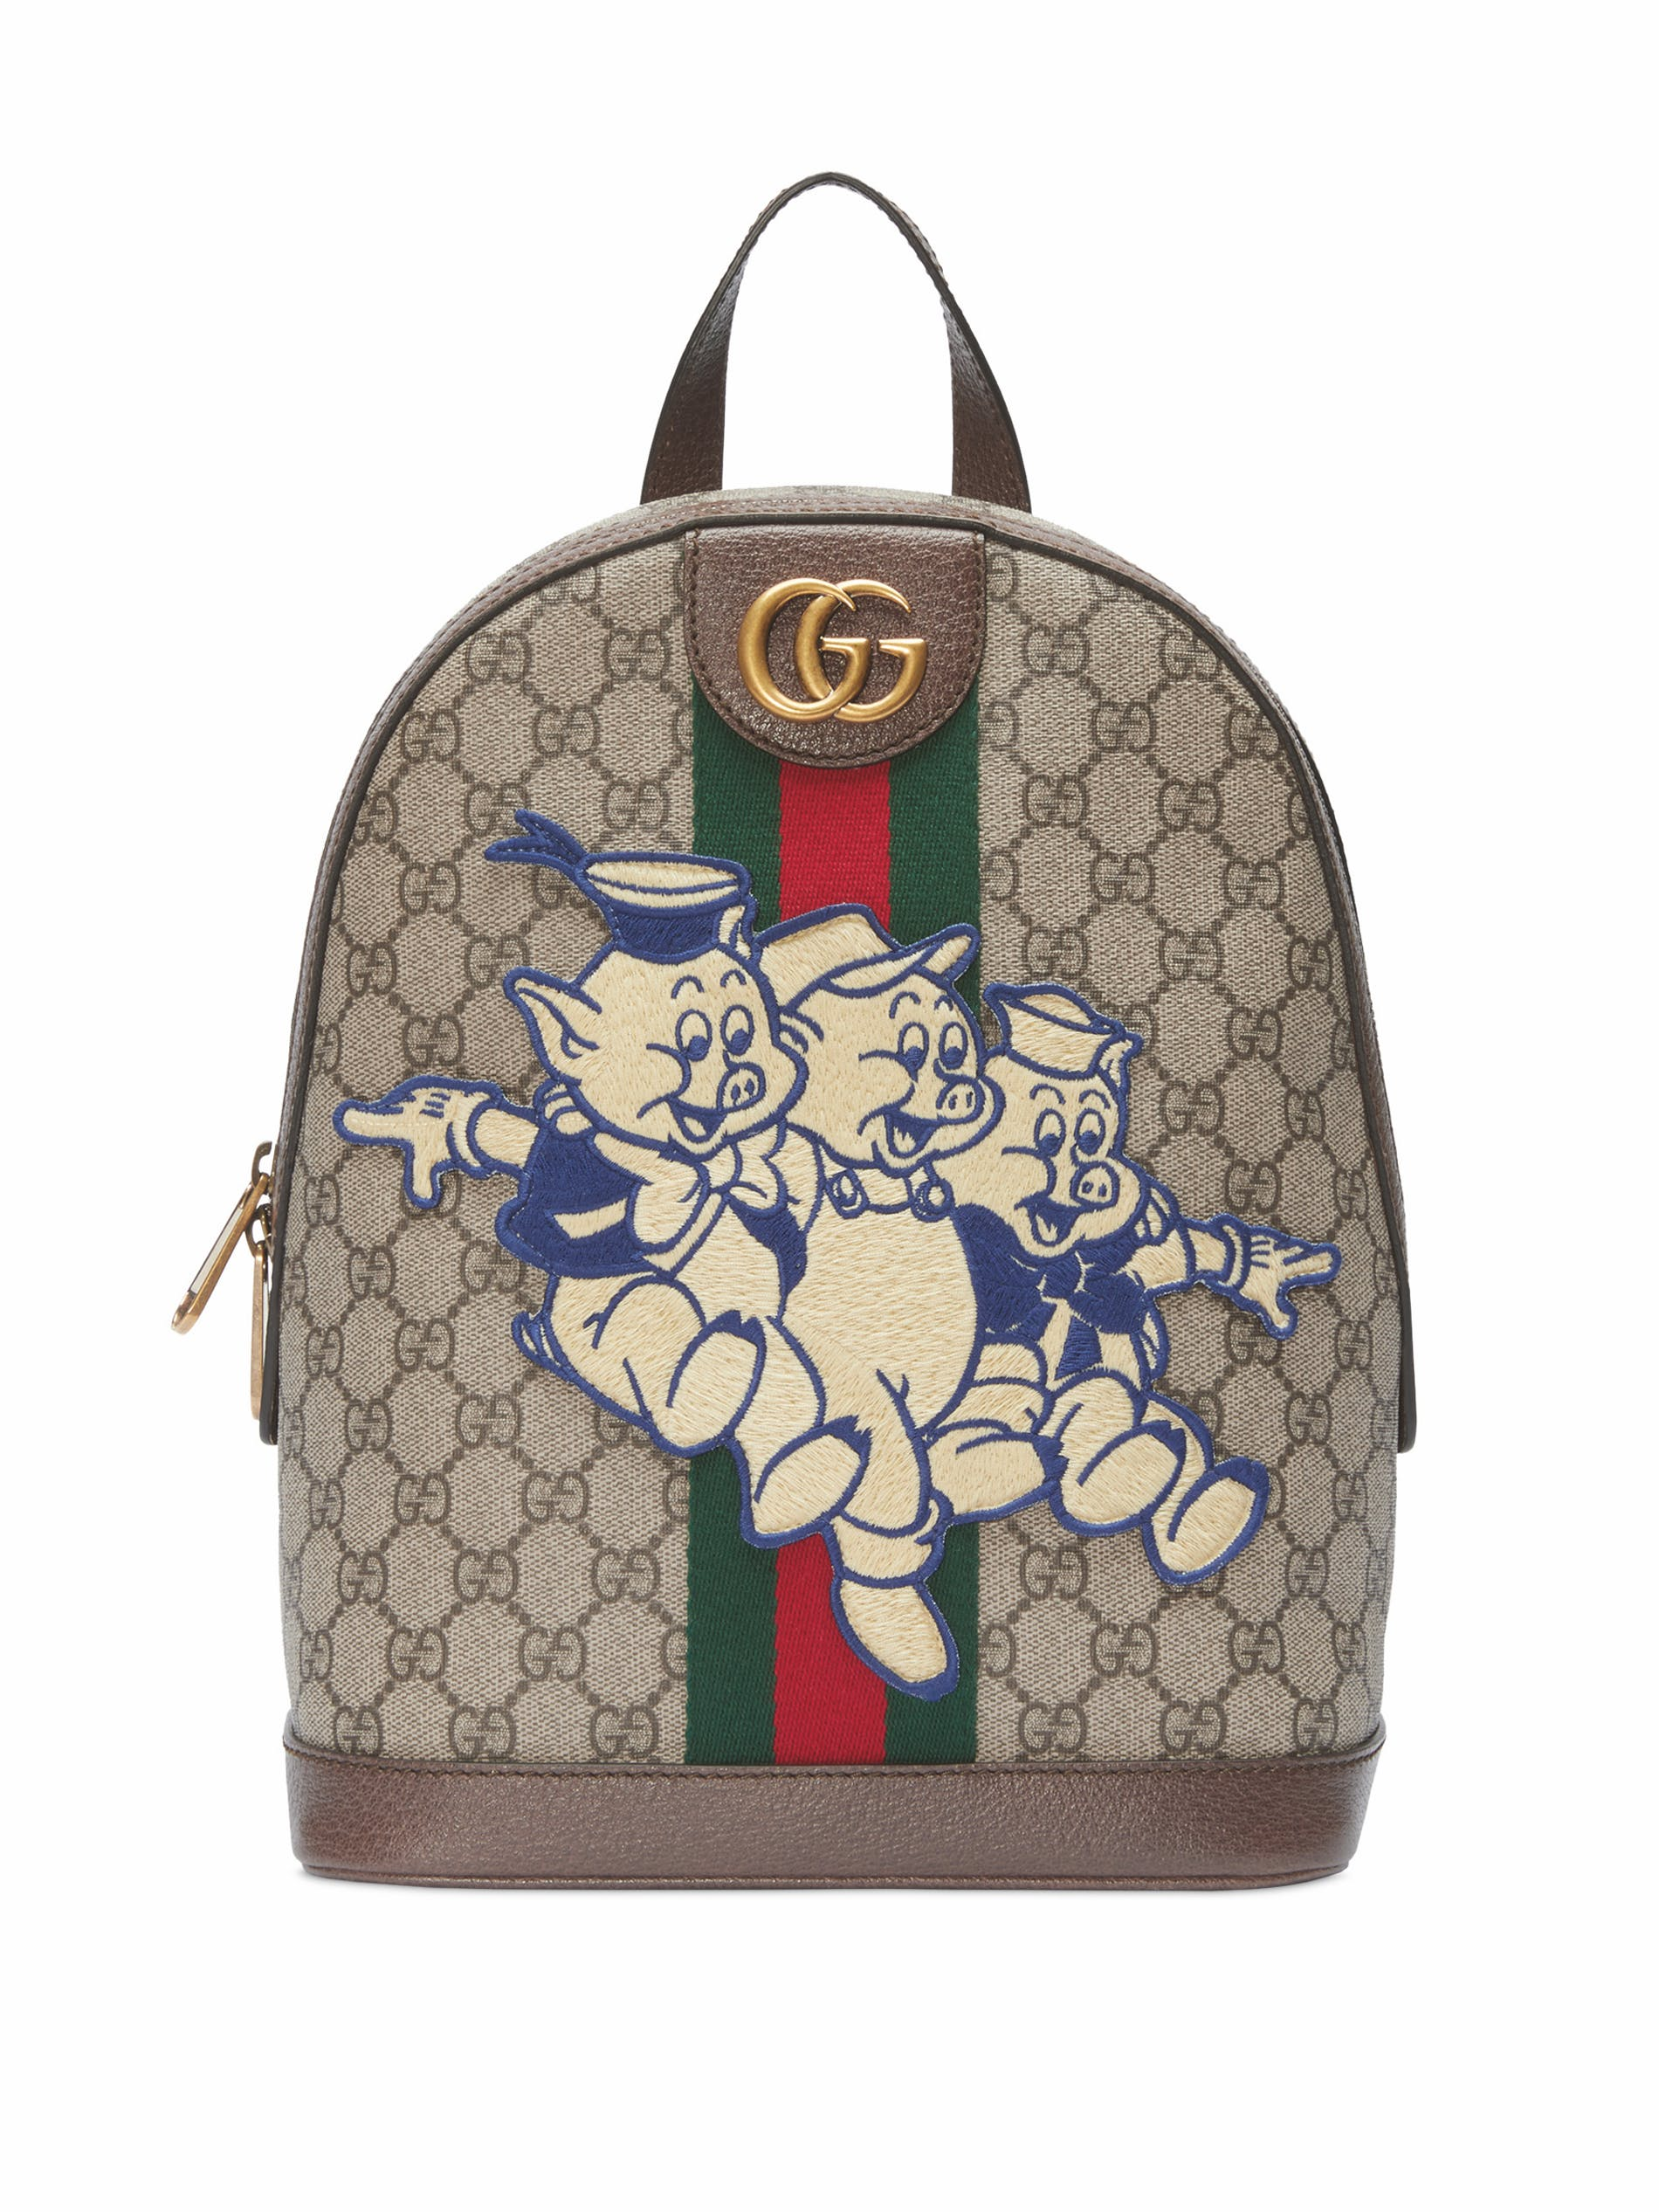 GucciOphidia GG backpack with Three Little Pigs, US$ 1,690